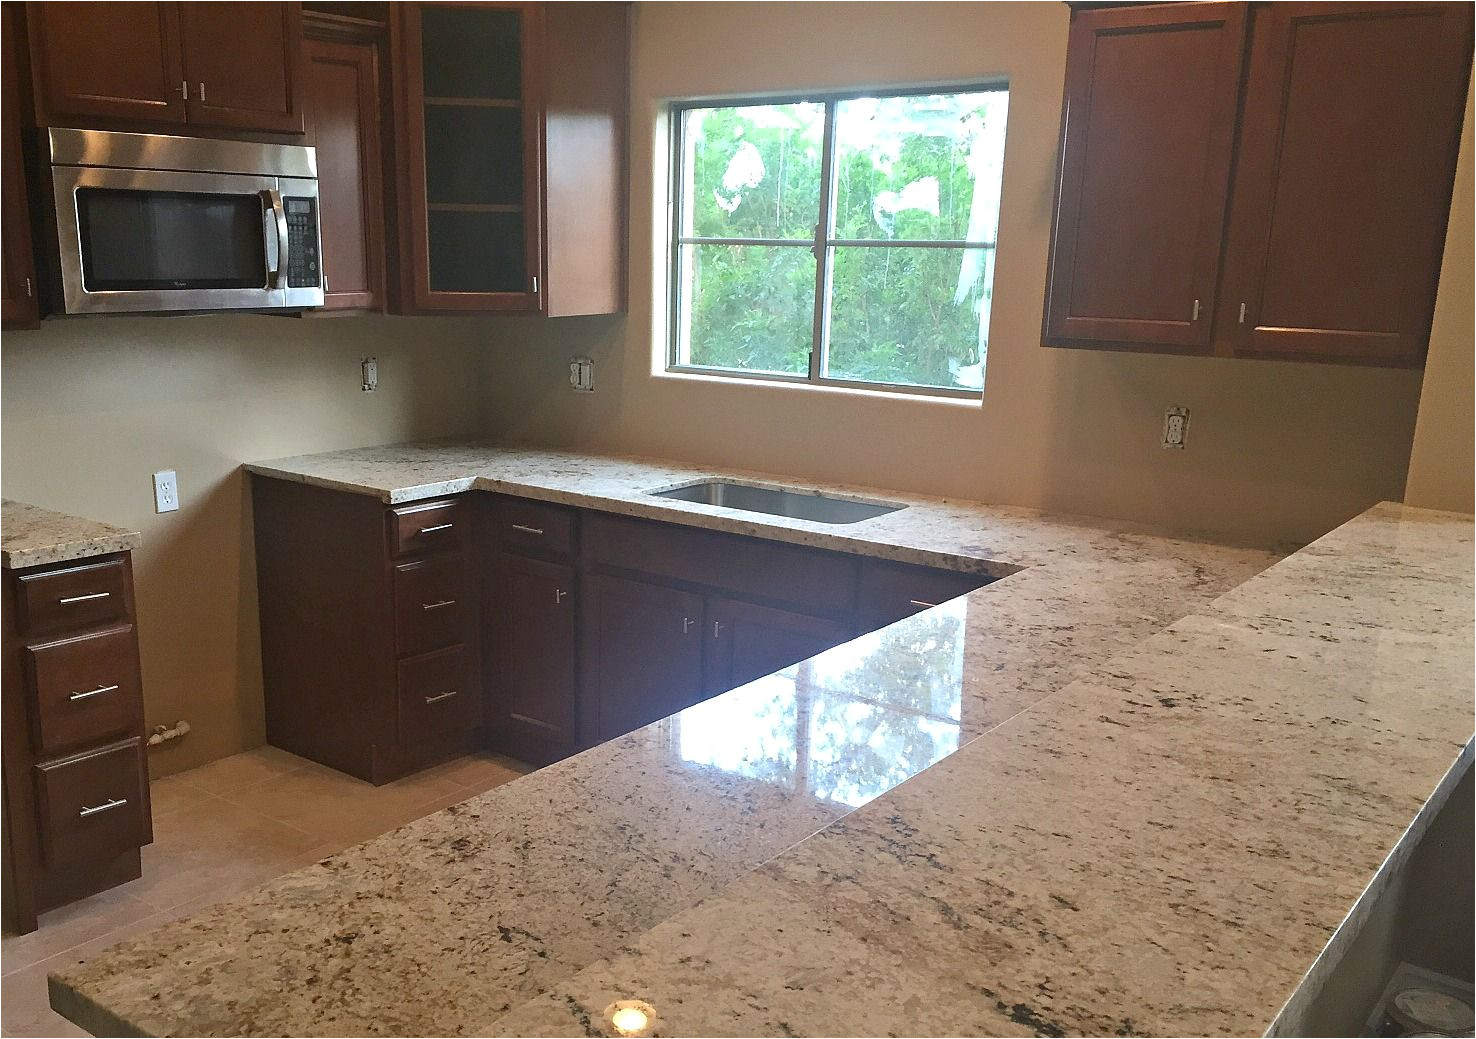 cafe creme granite countertop remodel in phoenix az with flat polish edge and stainless steel under mount sink having trouble deciding your countertop